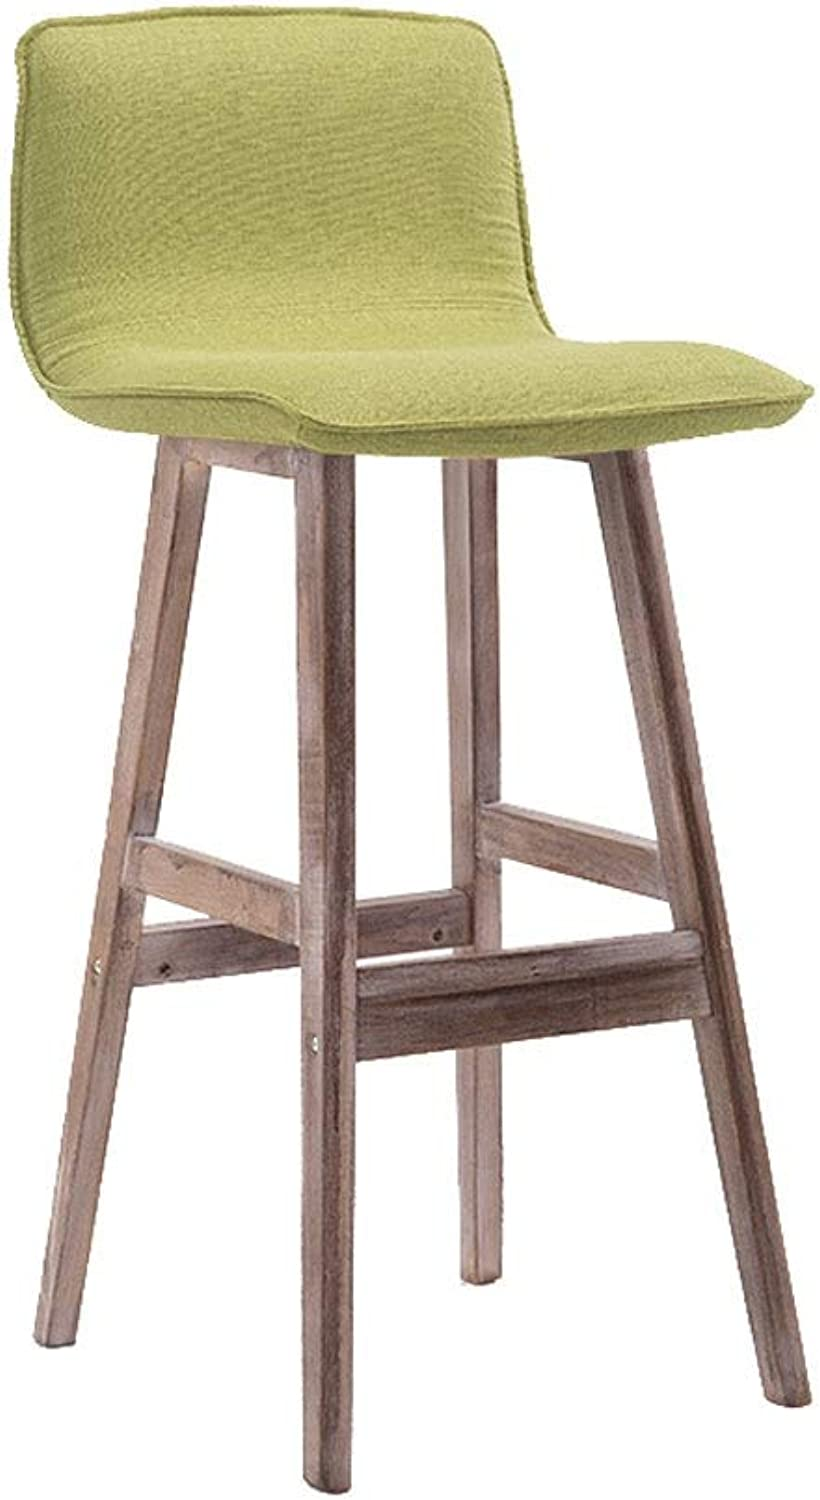 A+ Bar Chair with Backrest, High-Elastic Sponge-Filled Wooden Step Stool Natural Wood Grain High Chair - 6 color-43cmX99cm (color   Green)